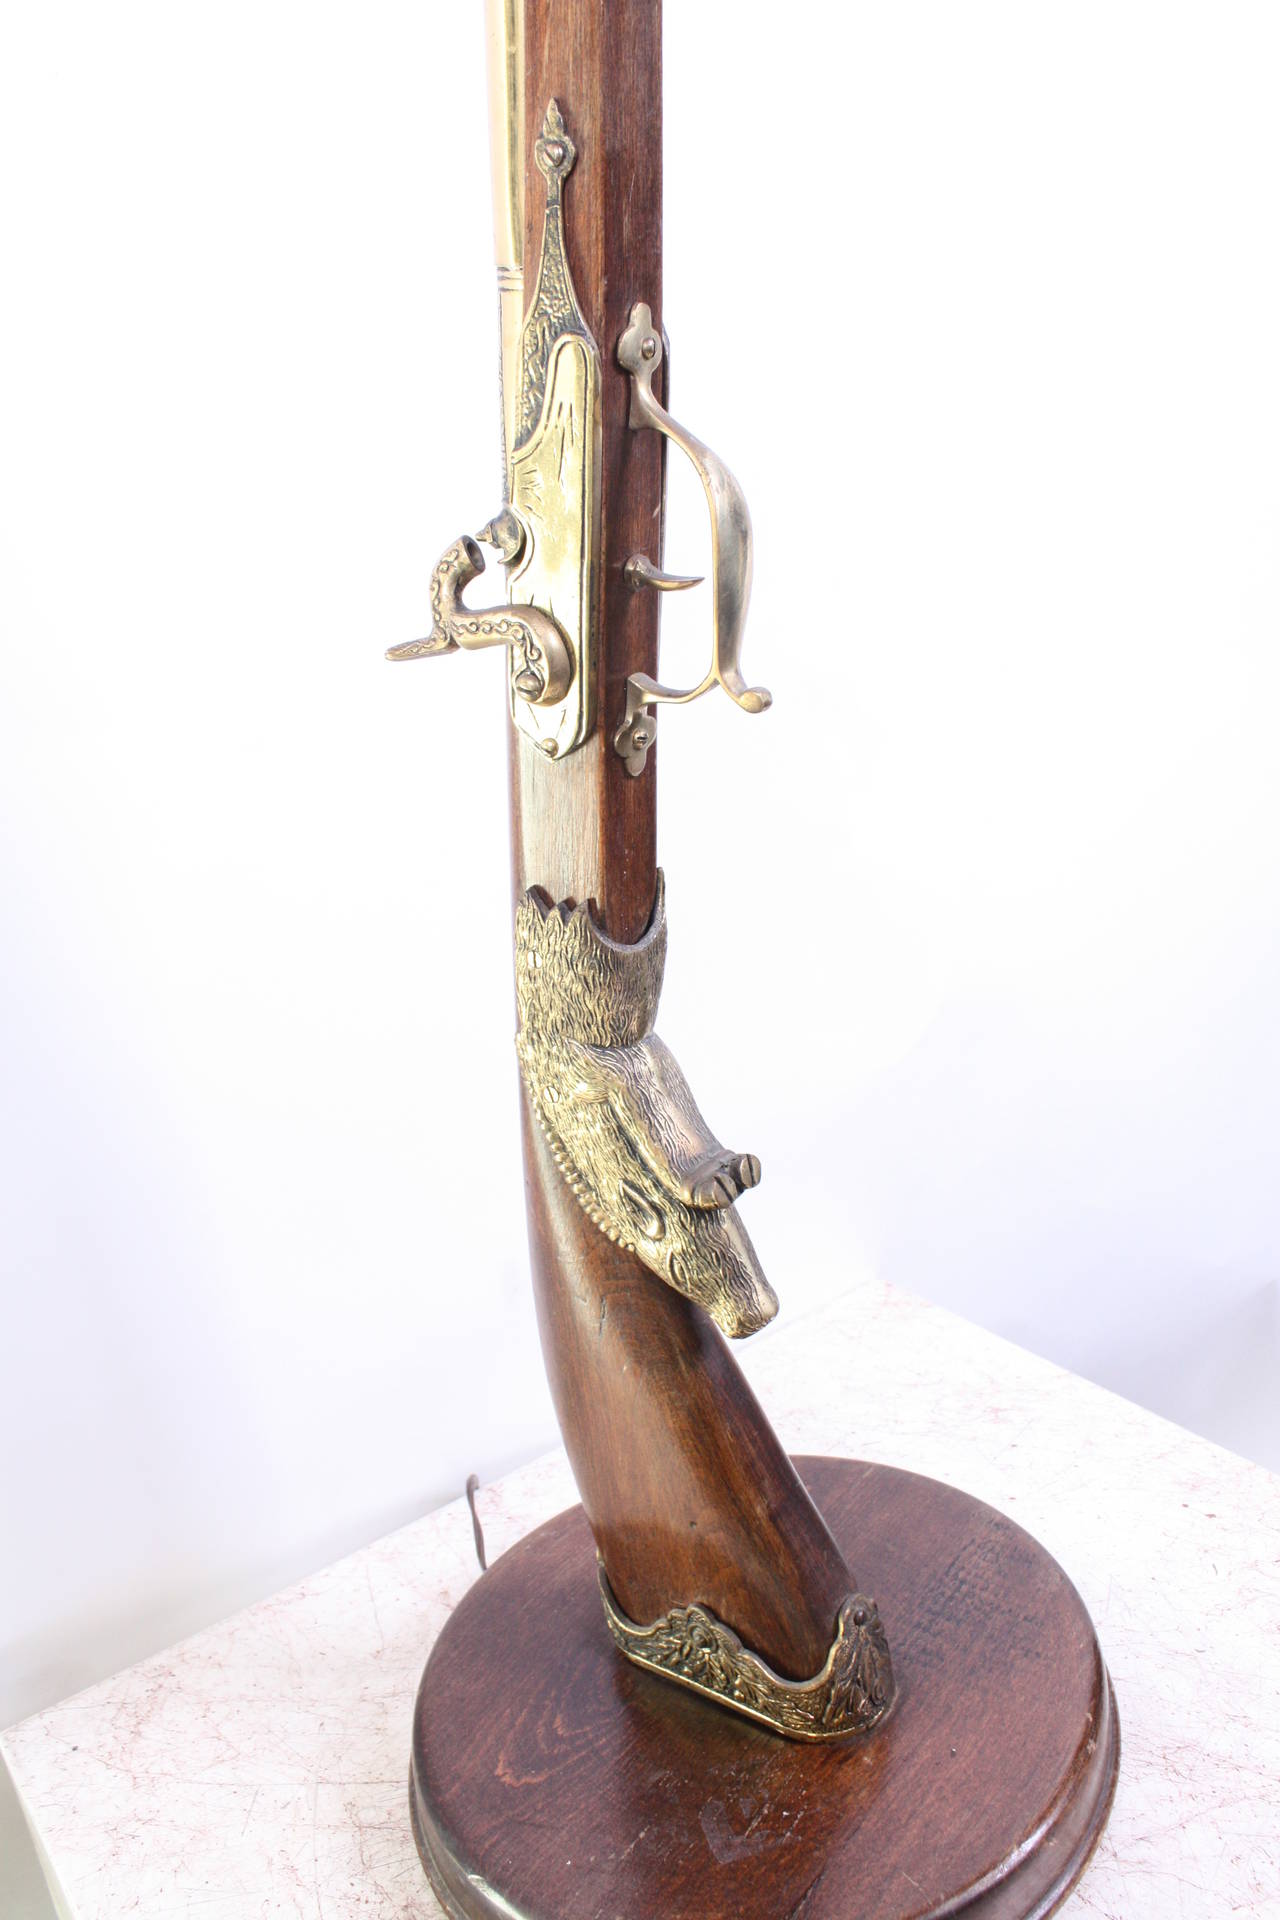 Vintage Unusual Gun Floor Lamp 20th Century For Sale at